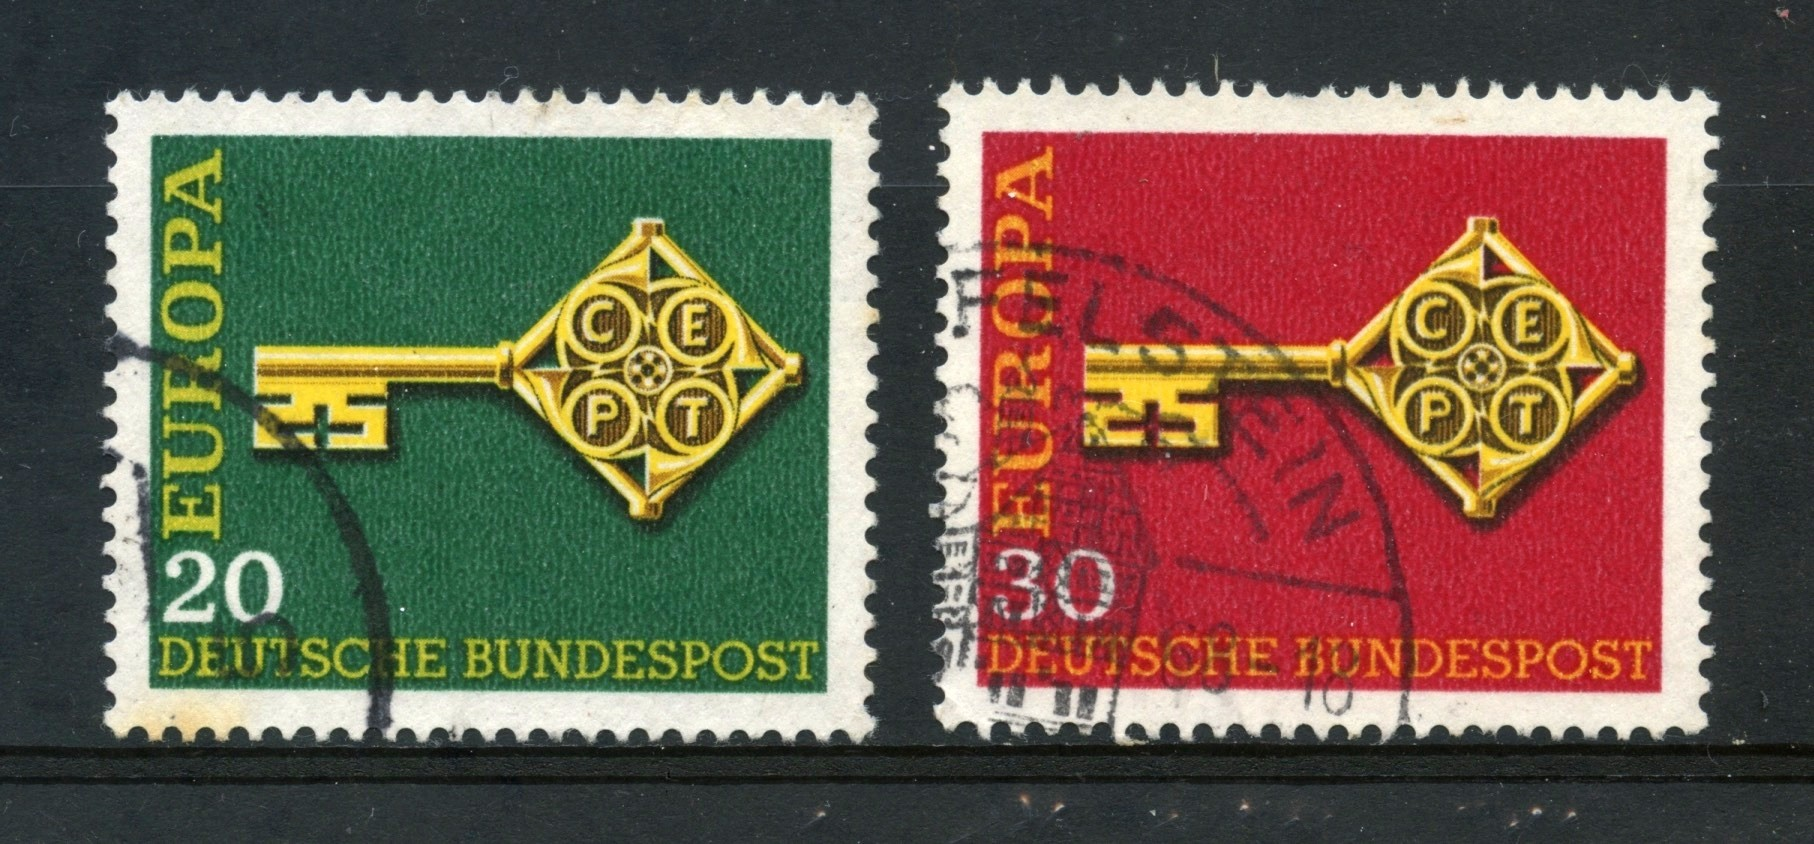 Lotto Germania 6 49